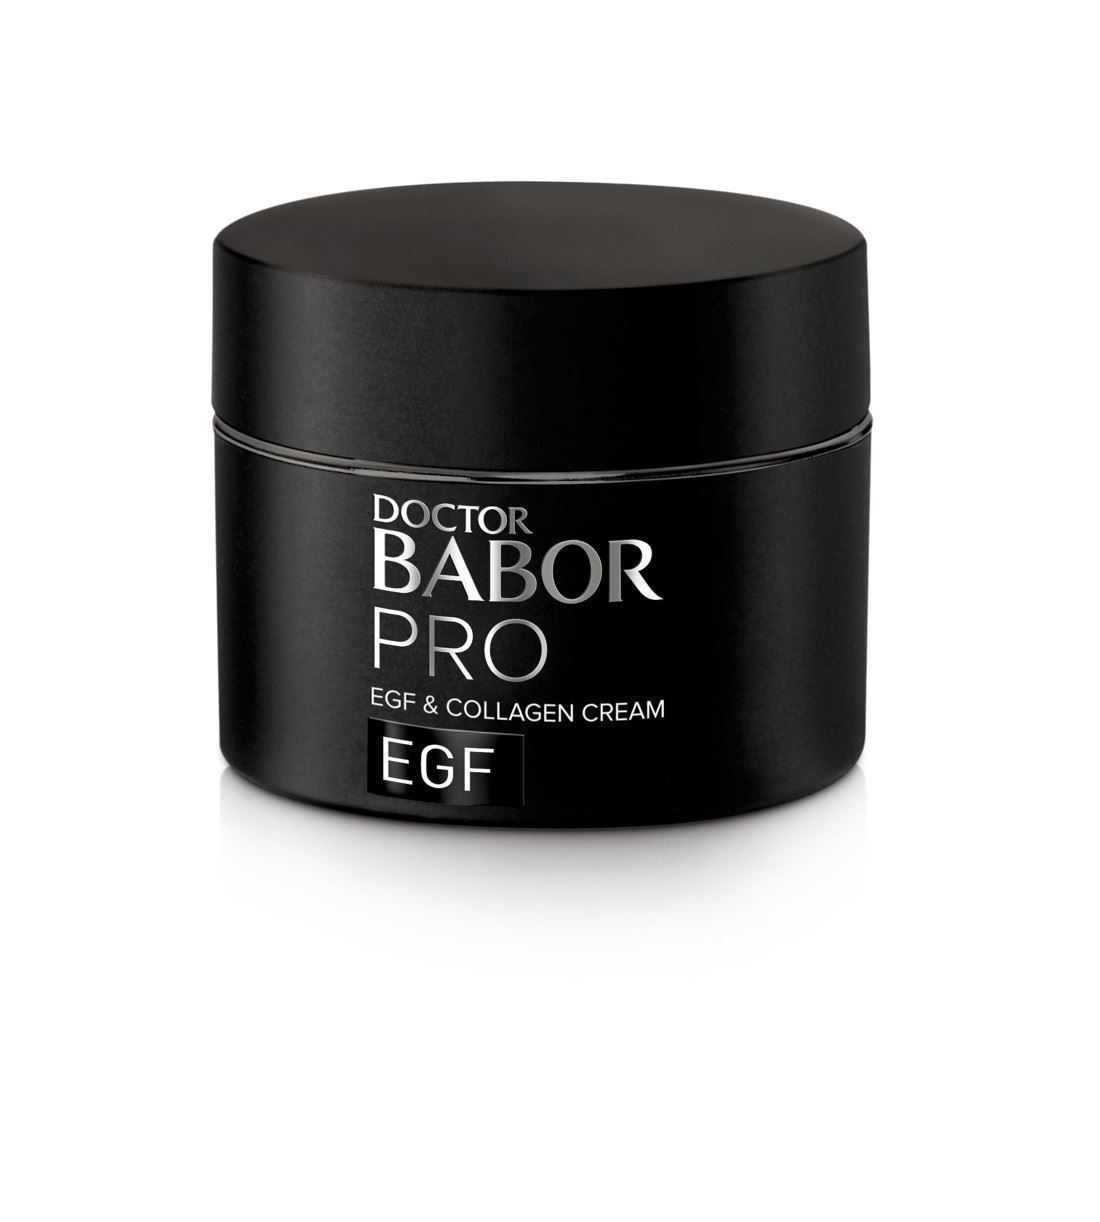 DOCTOR BABOR PRO EGF & COLLAGEN CREAM - Imagen 1